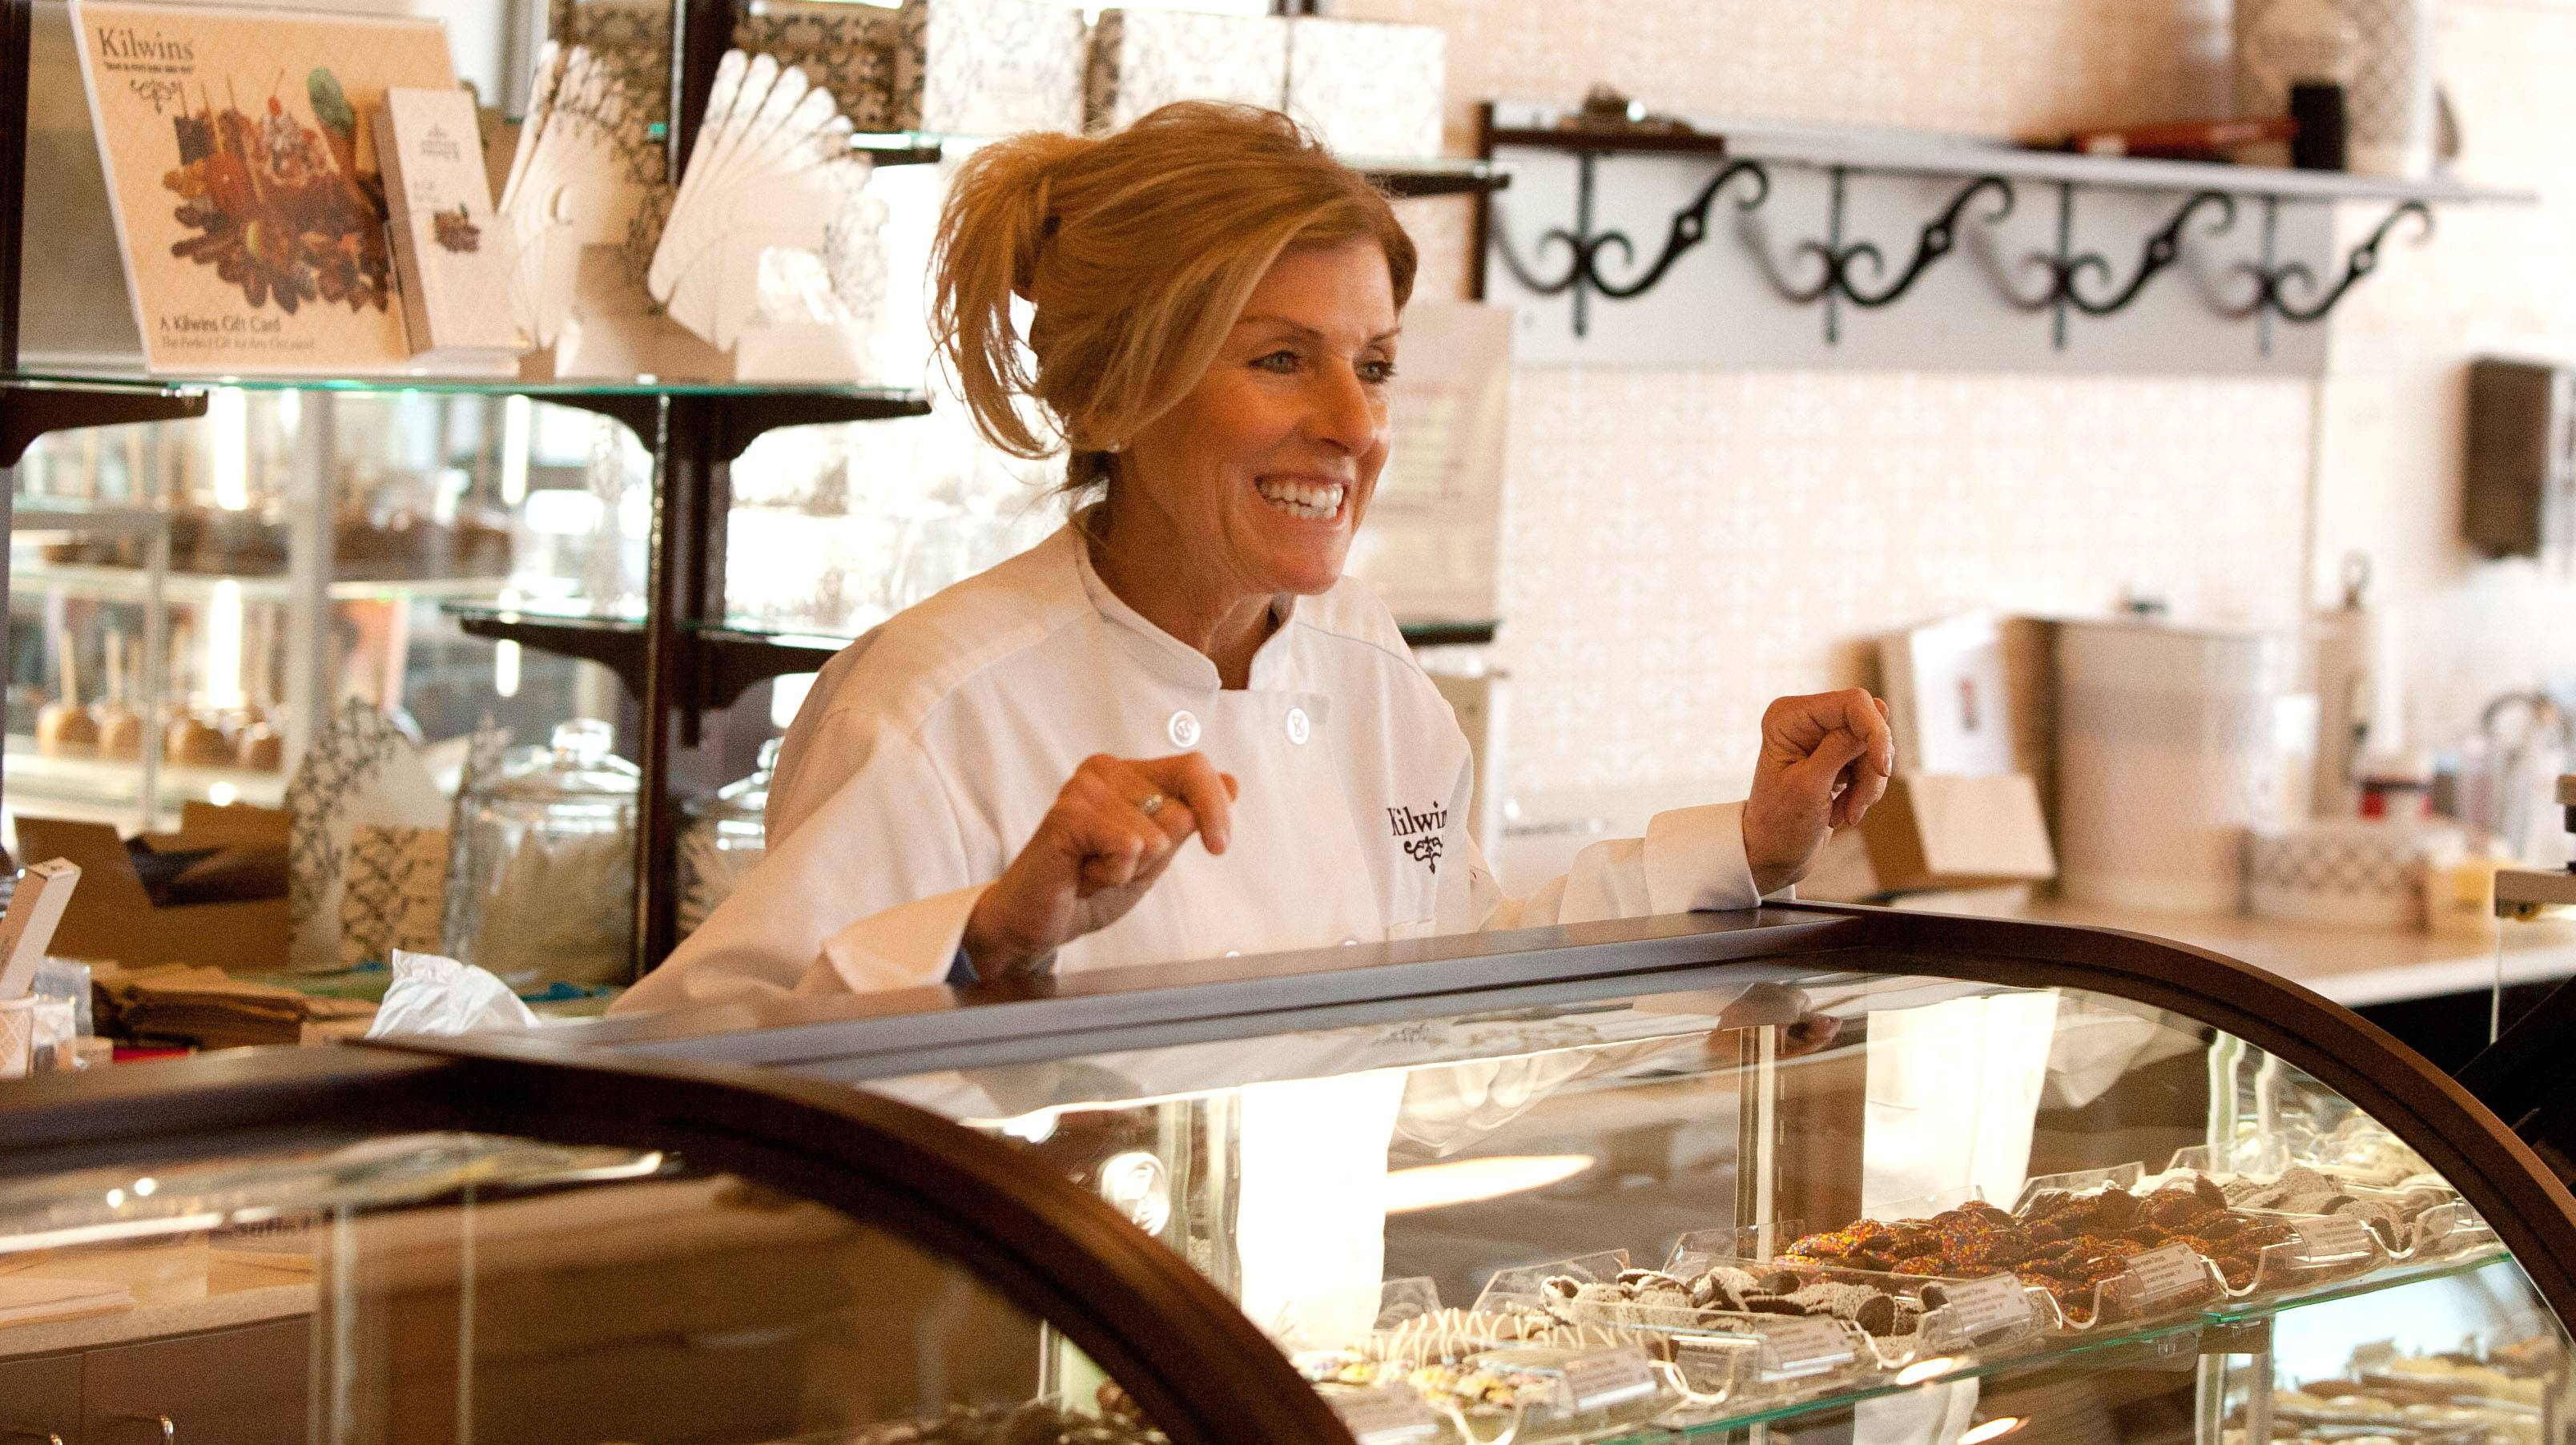 Maribeth Barrett is the owner of the new Kilwins Chocolate and Ice Cream store in downtown Wheaton.